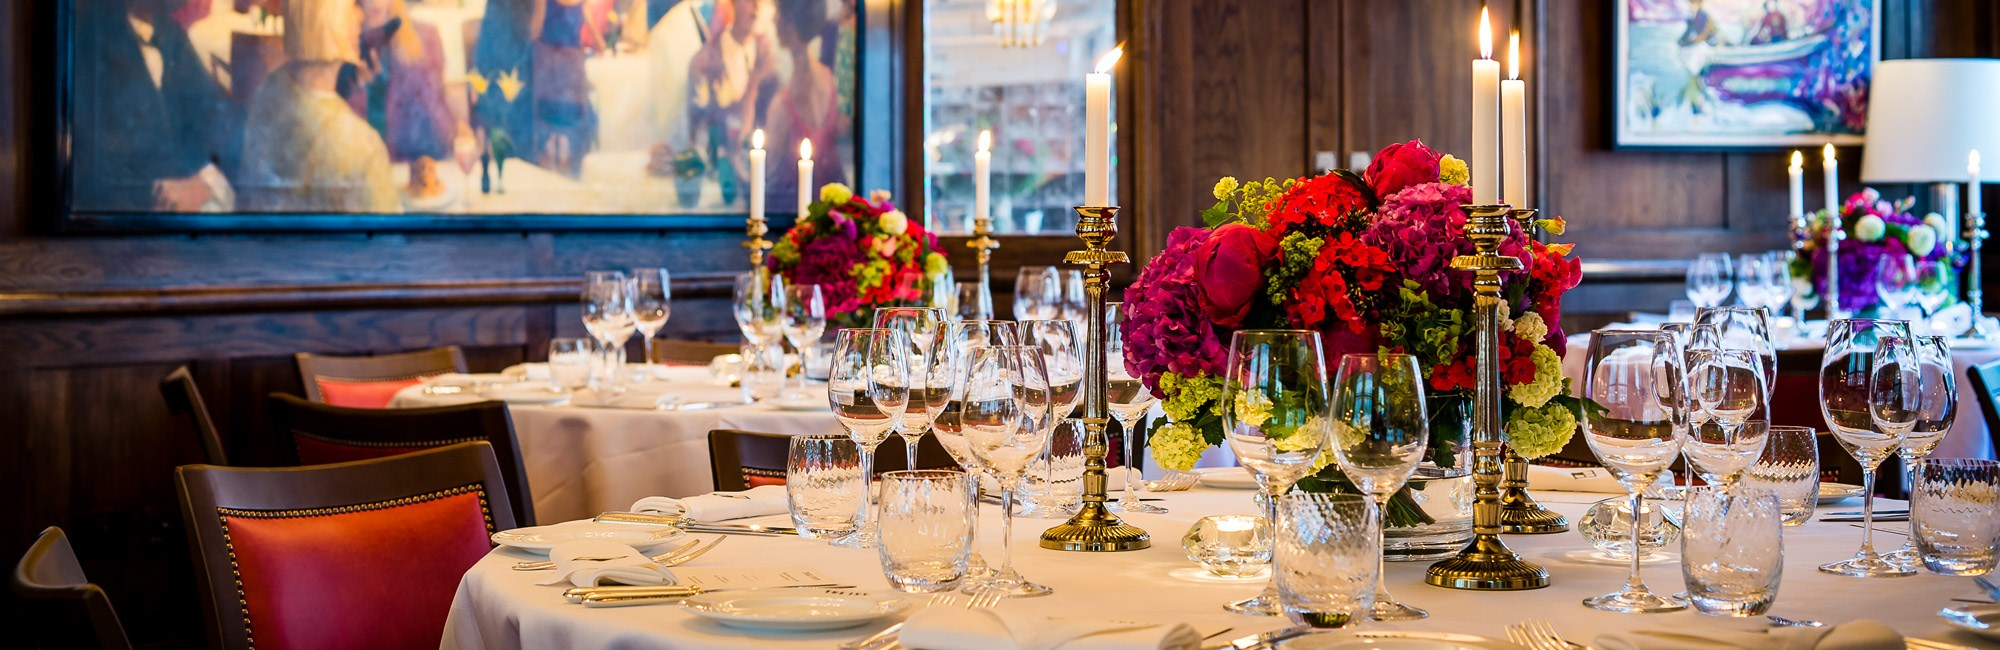 Large Group Dining and Private Hire in Covent Garden, The Ivy